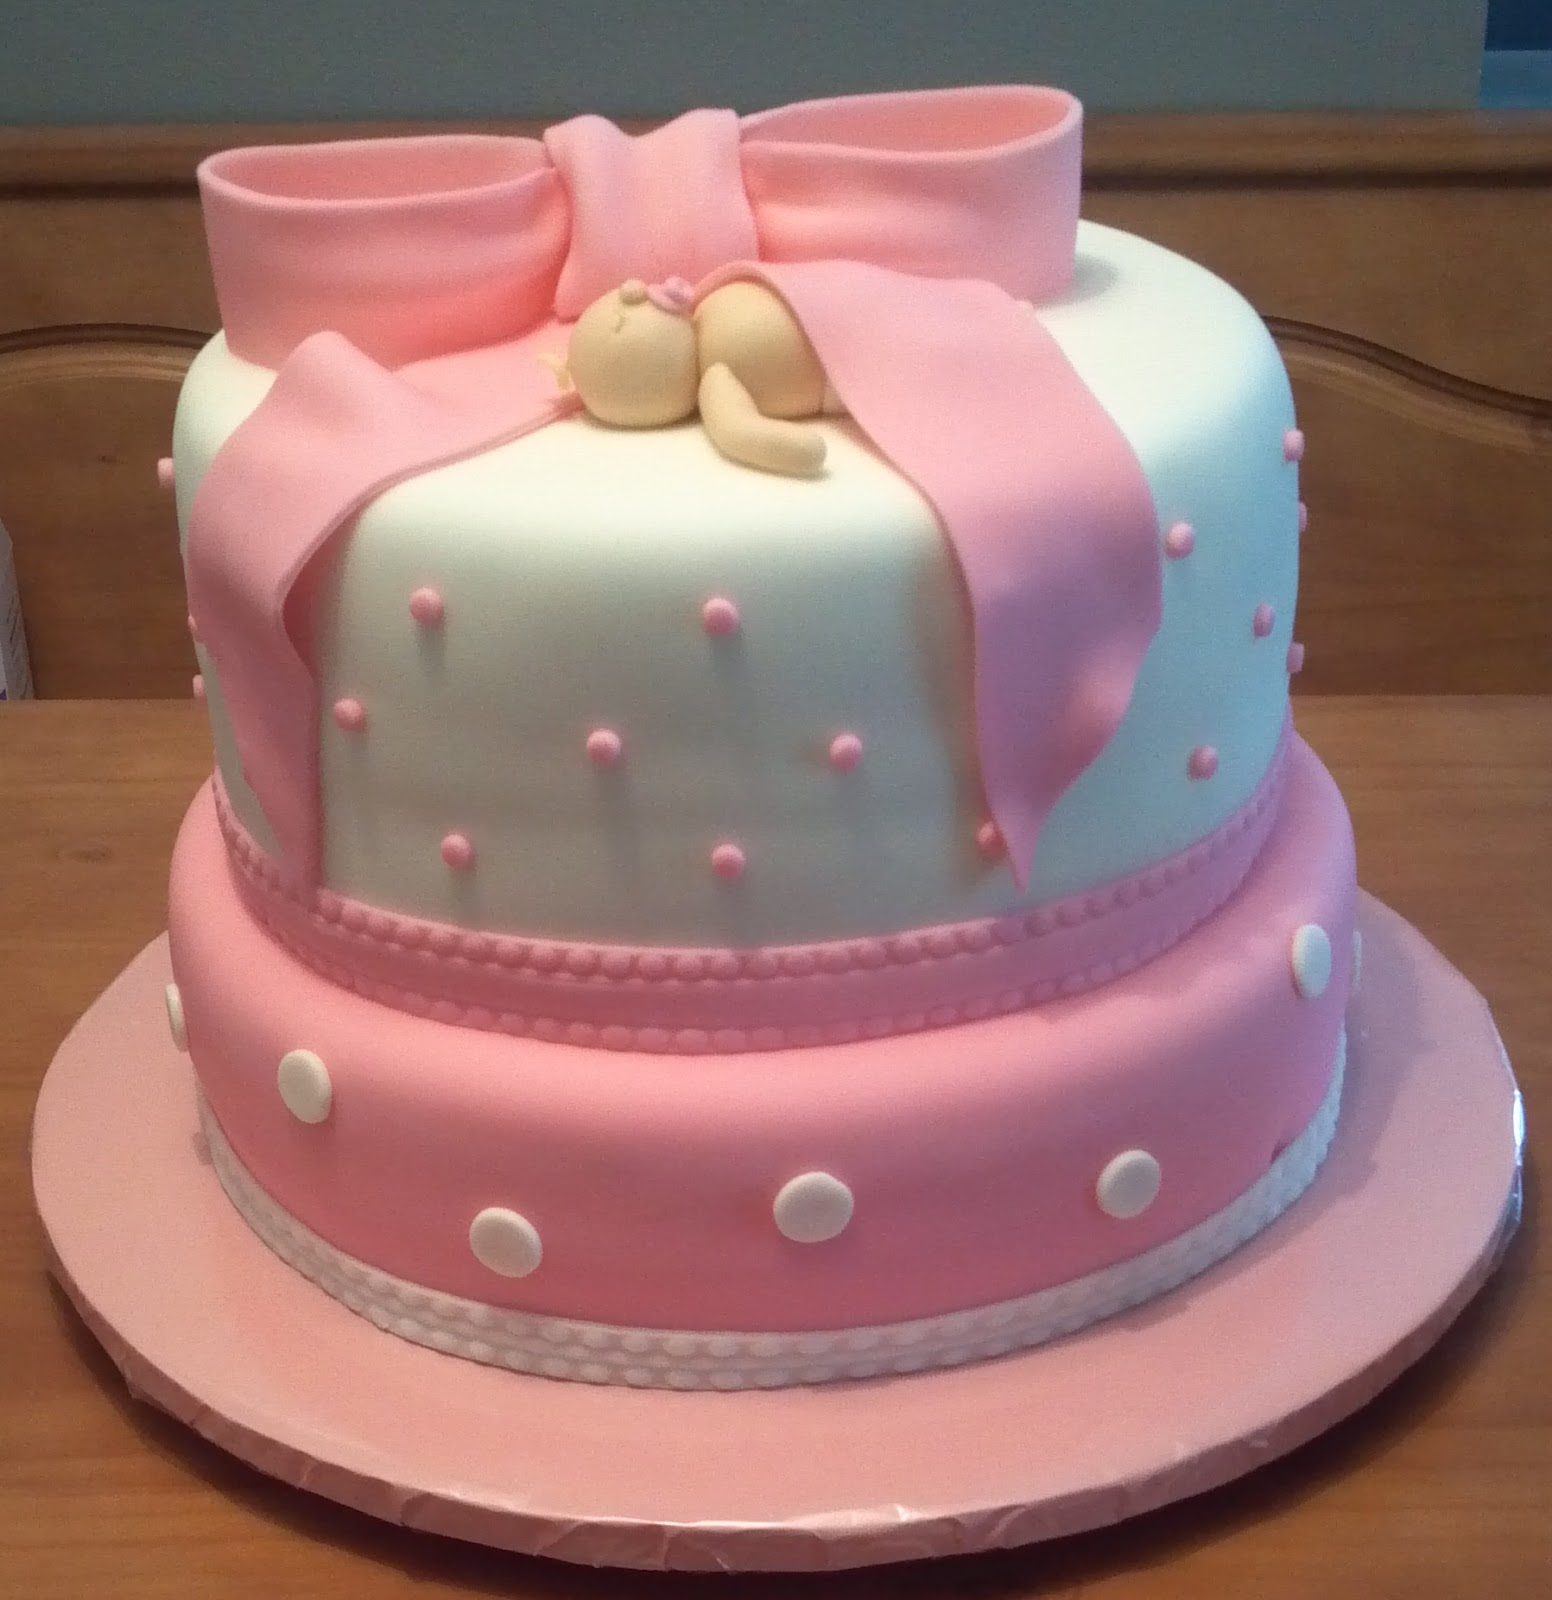 Wick D Cakes Pink Baby Shower Cake